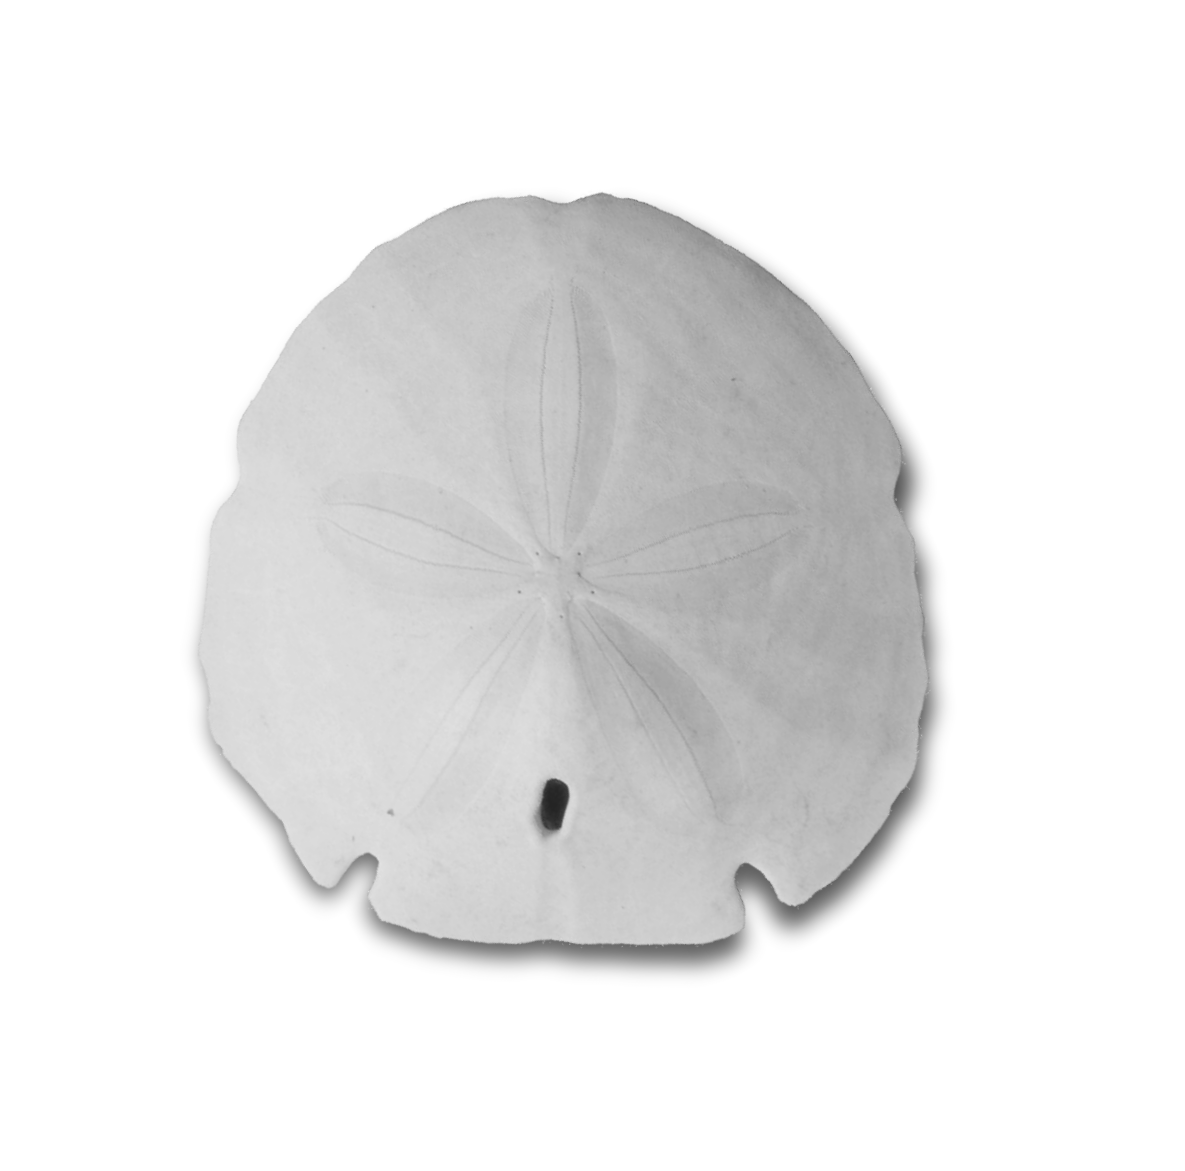 Png black and white. Shell clipart sand dollar